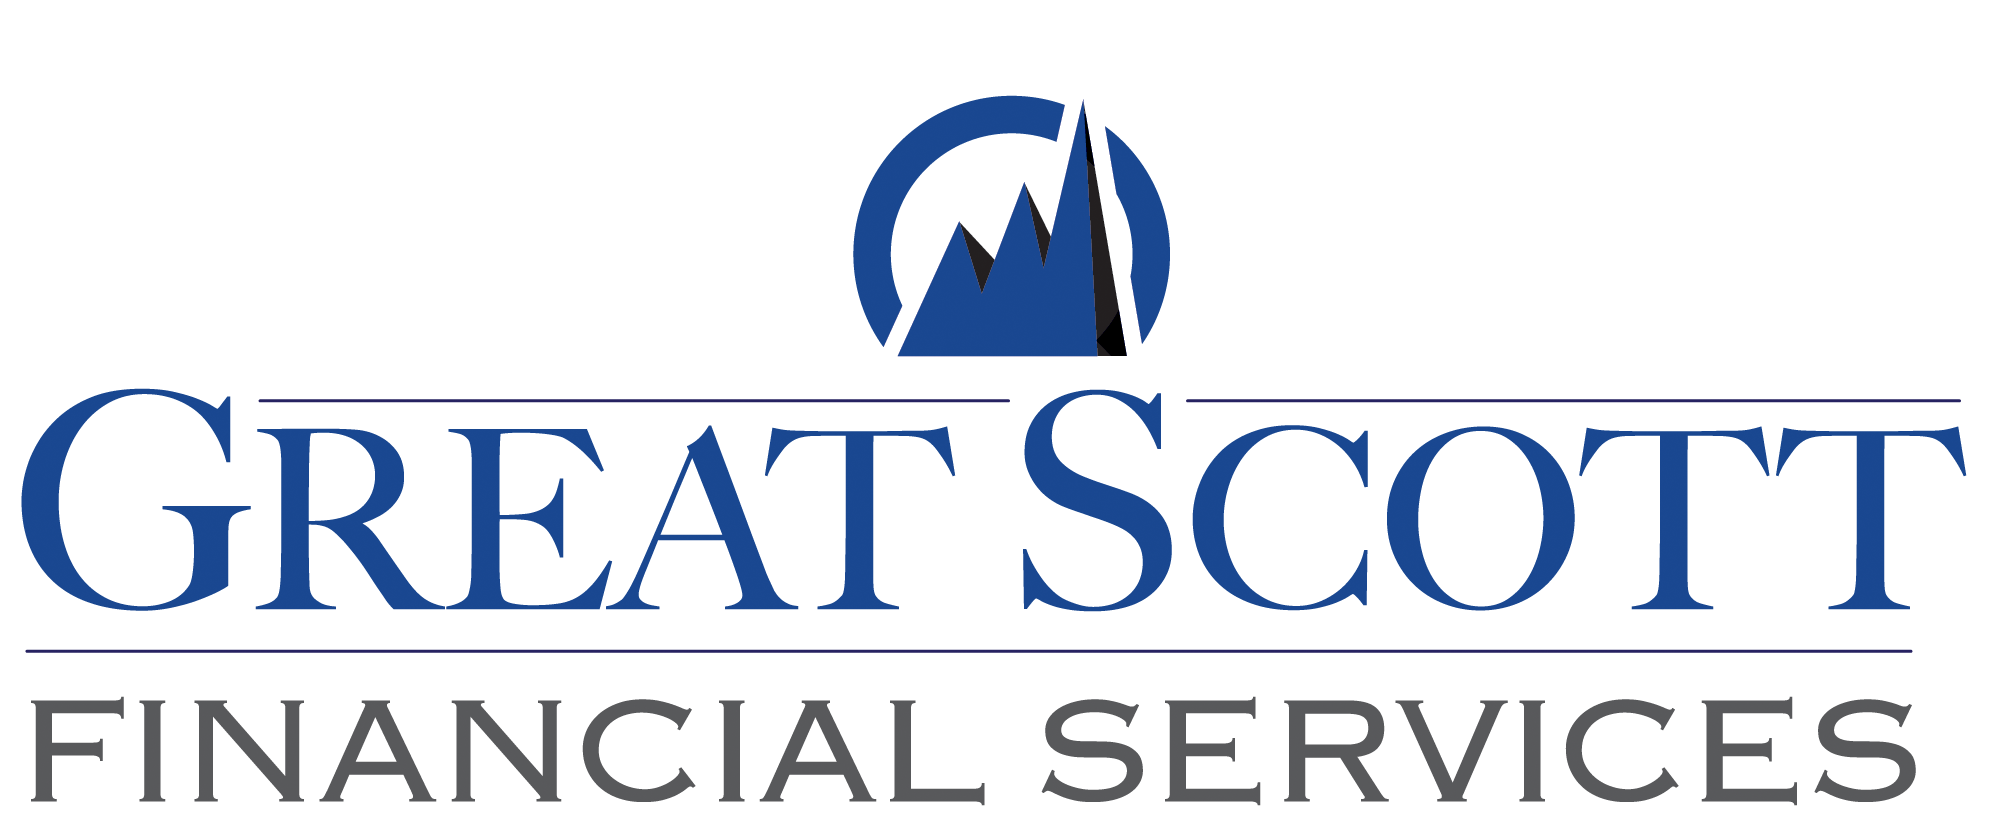 Great Scott Financial